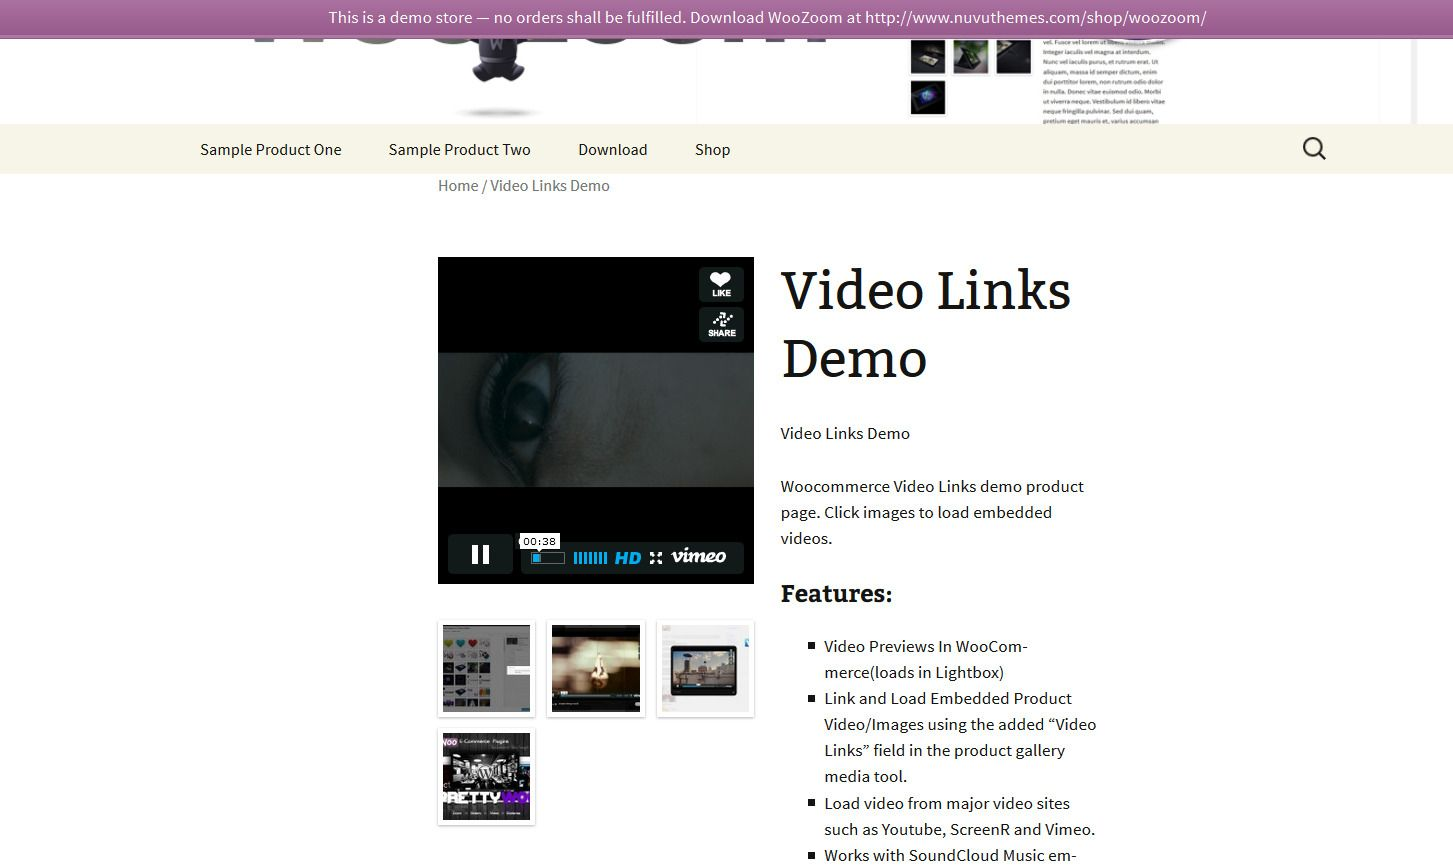 Woocommerce Video Links Pro Product Gallery Self Hosted